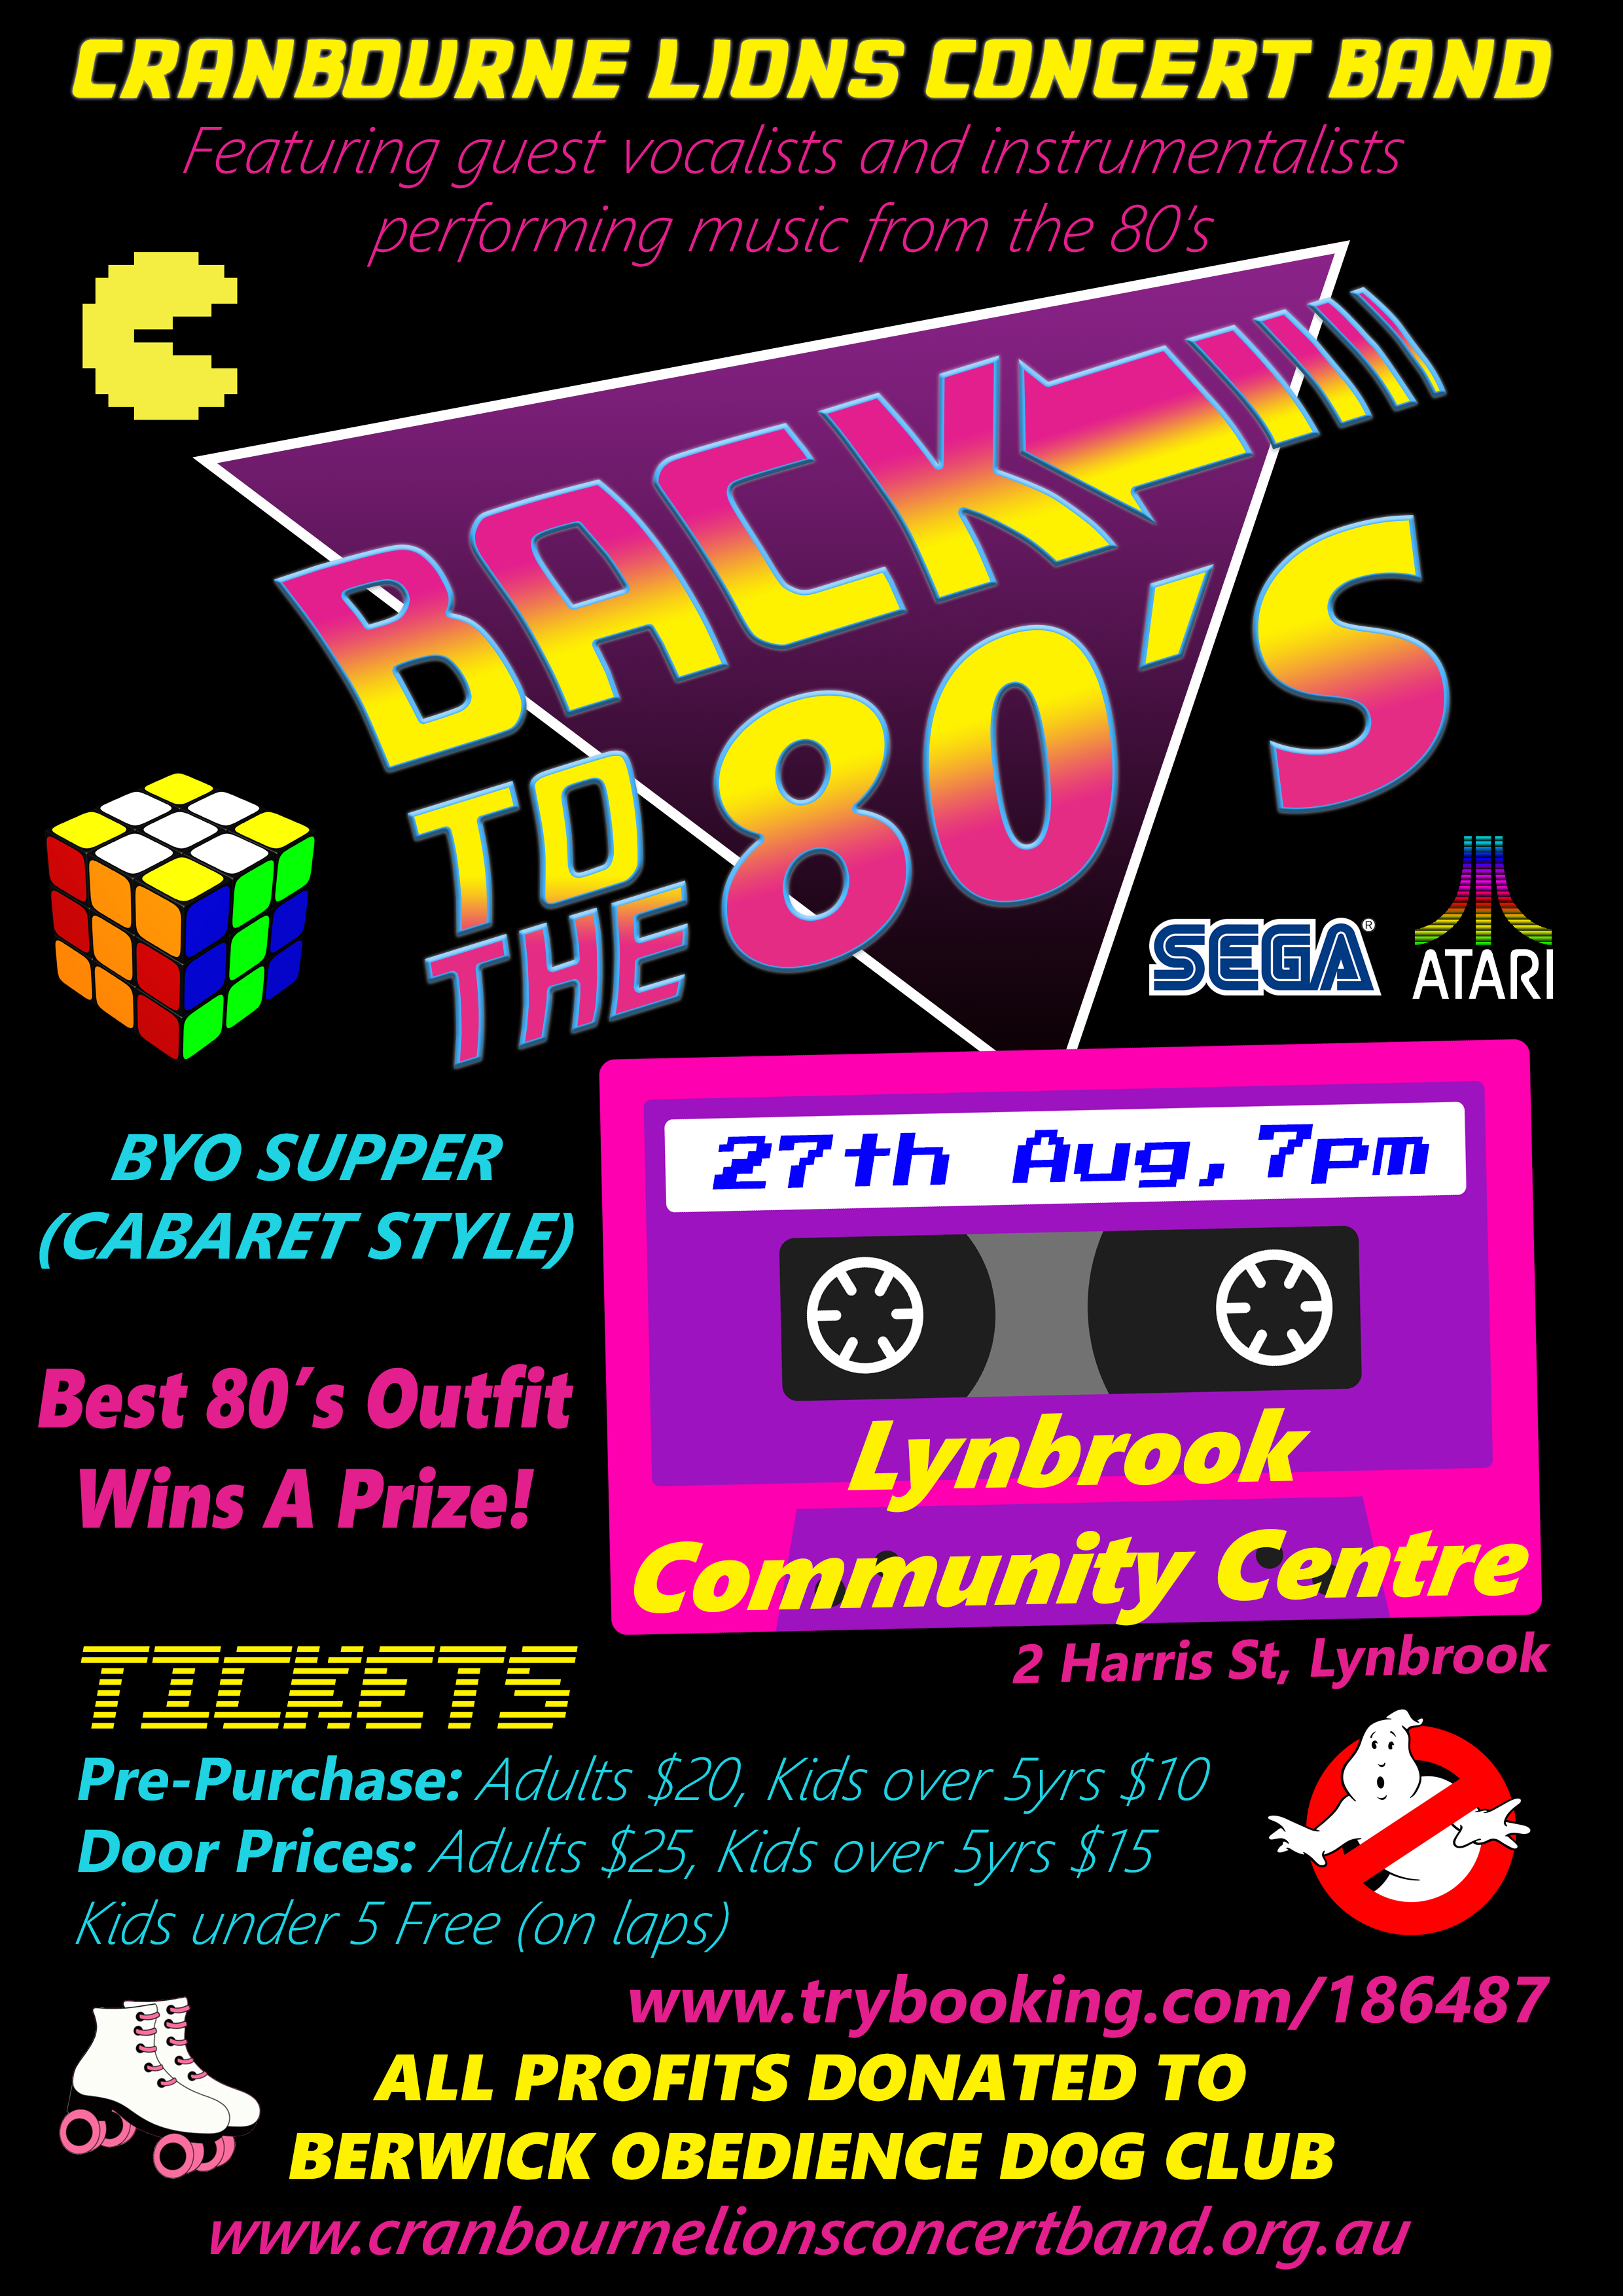 Back to the 80s - Full Resolution